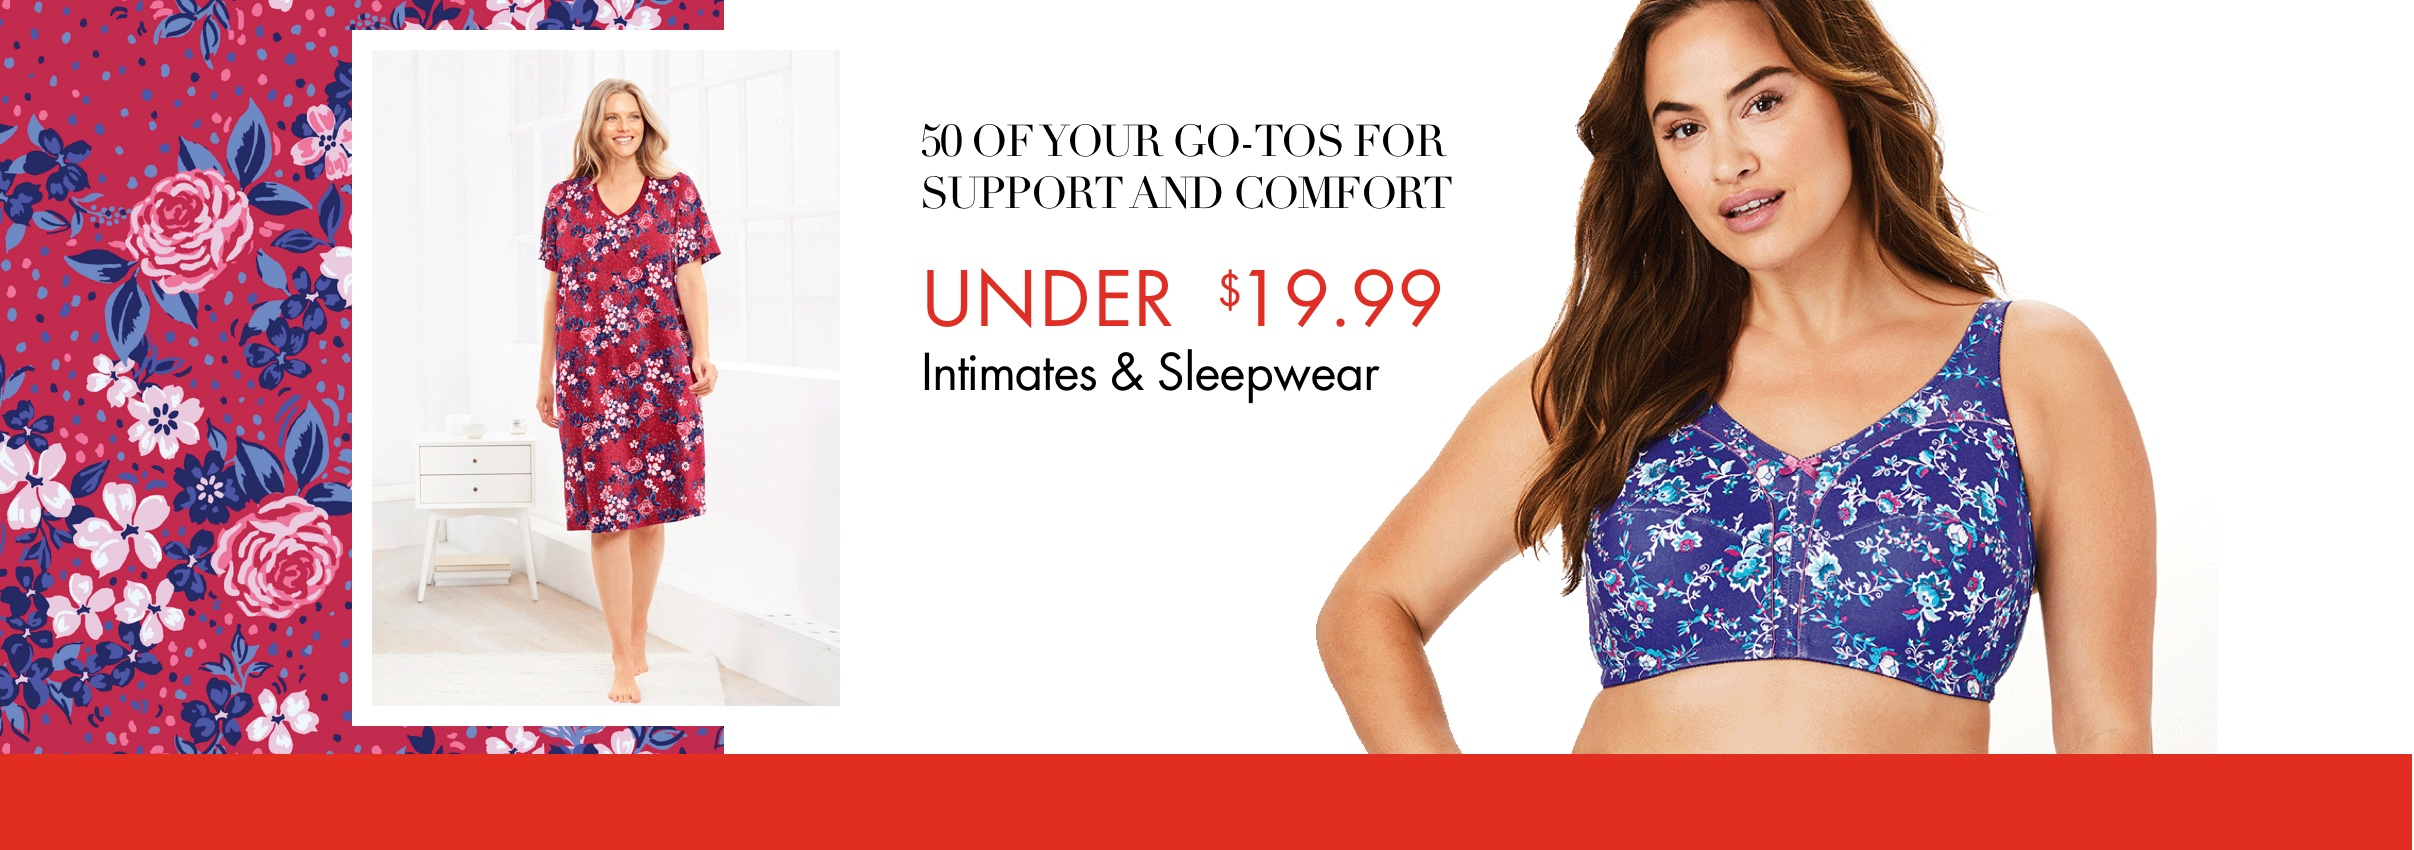 50 of your go-tos for support and comfort under $19.99 - Intimates & Sleepwear